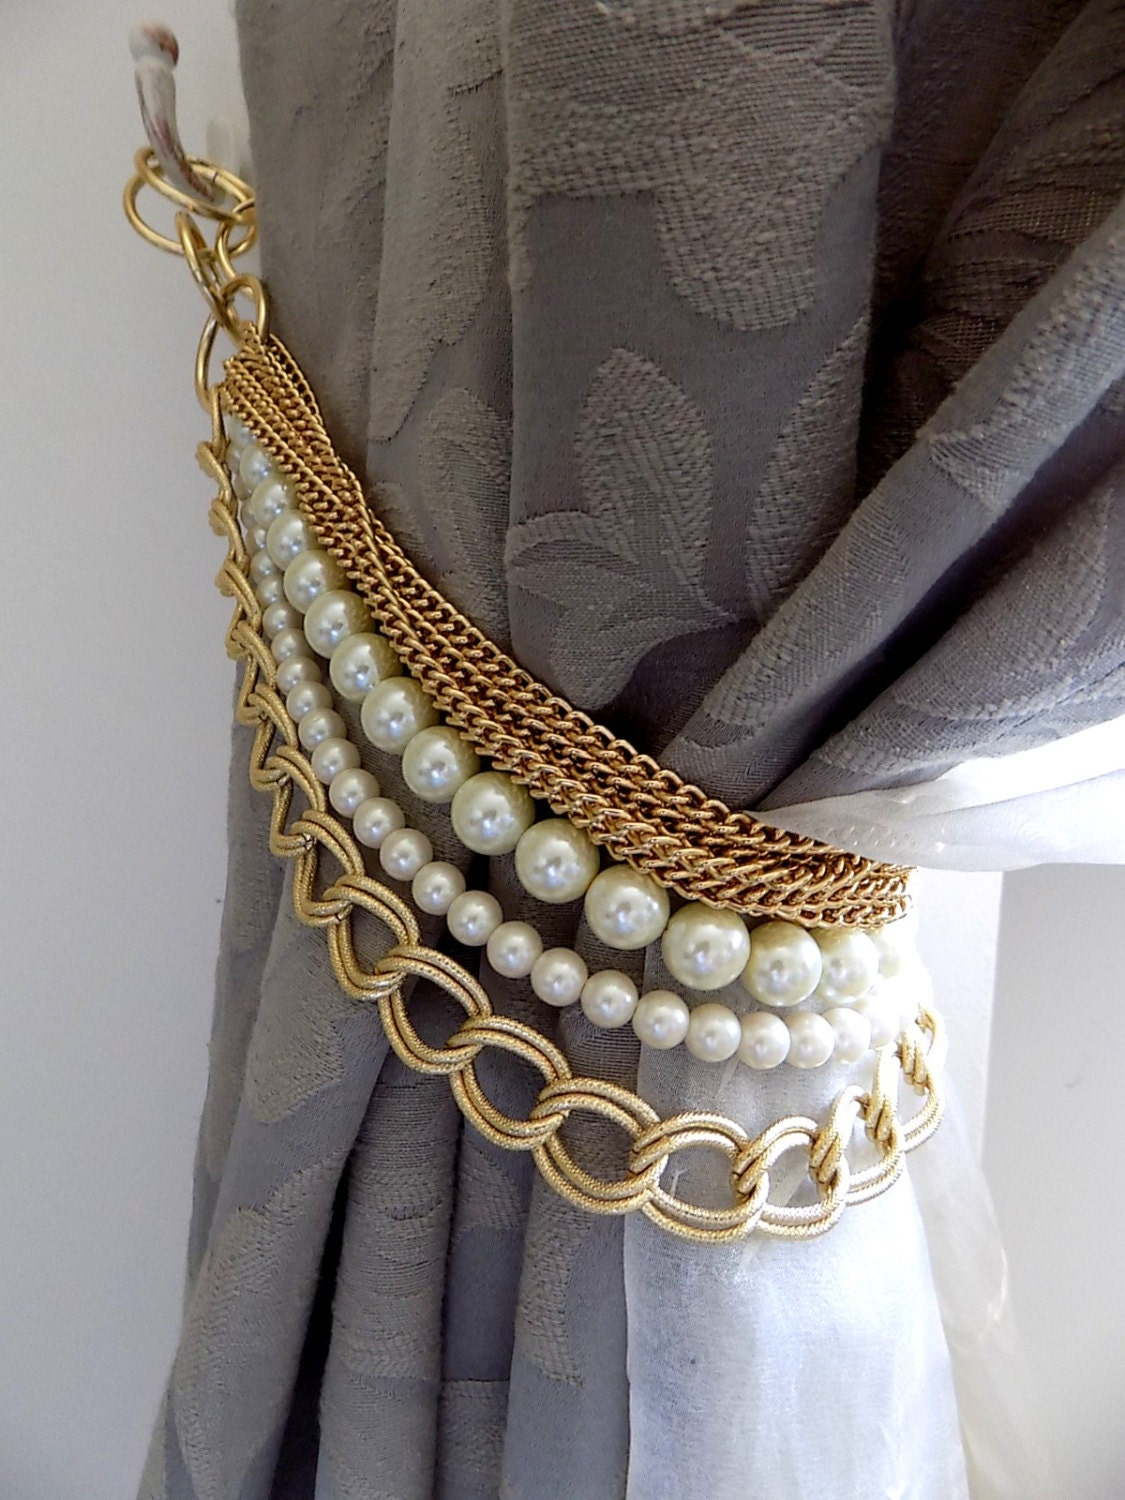 Beaded Decorative Curtain Holder Tie Back With Golden Chain